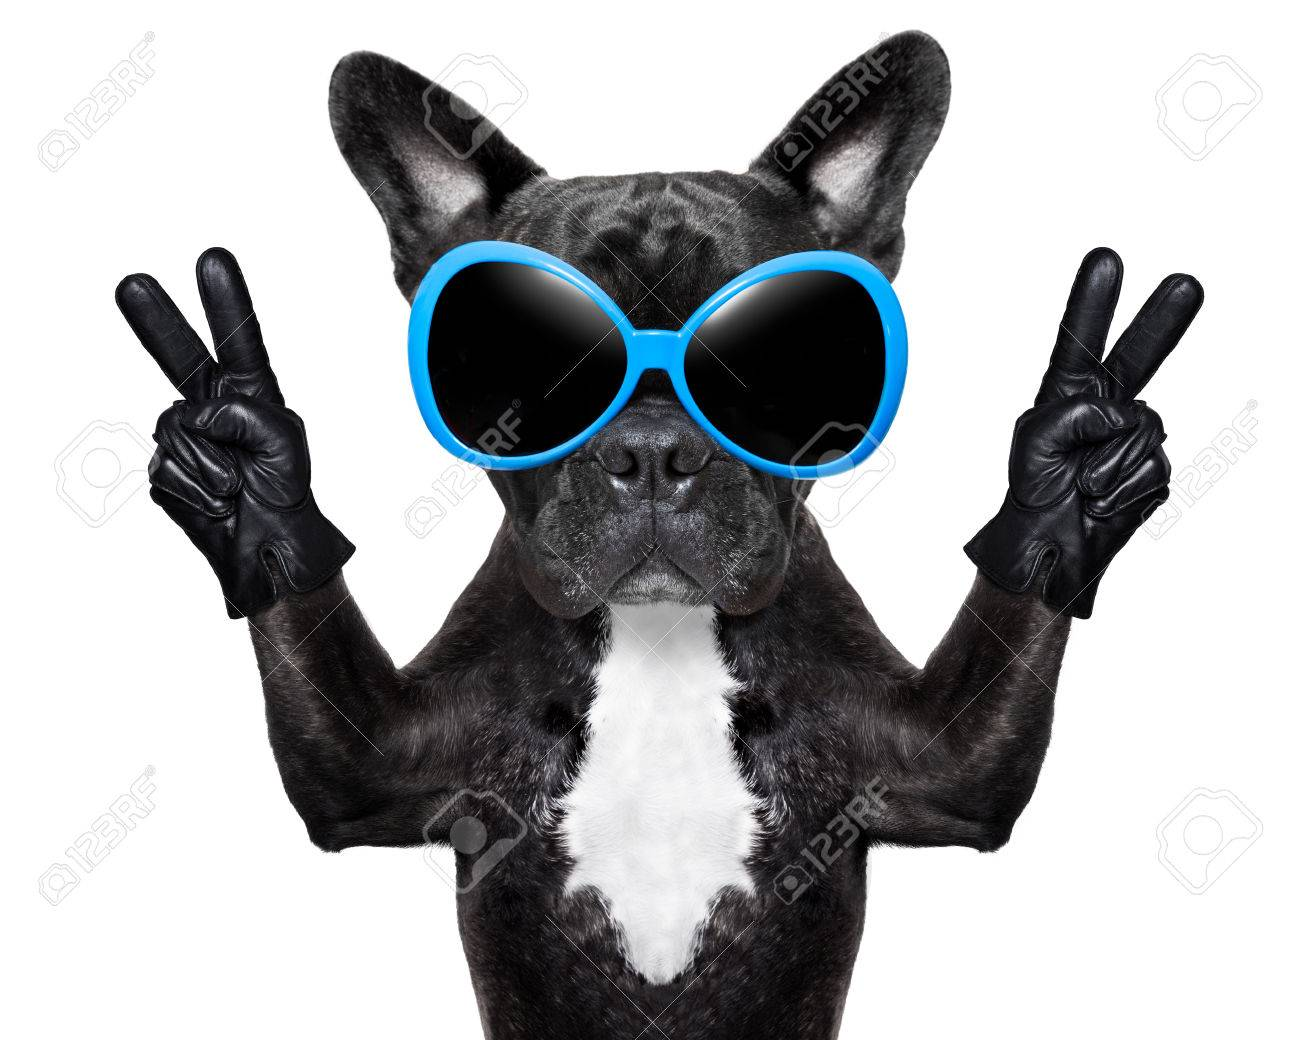 very cool dog with peace fingers wearing gloves and fancy sunglasses